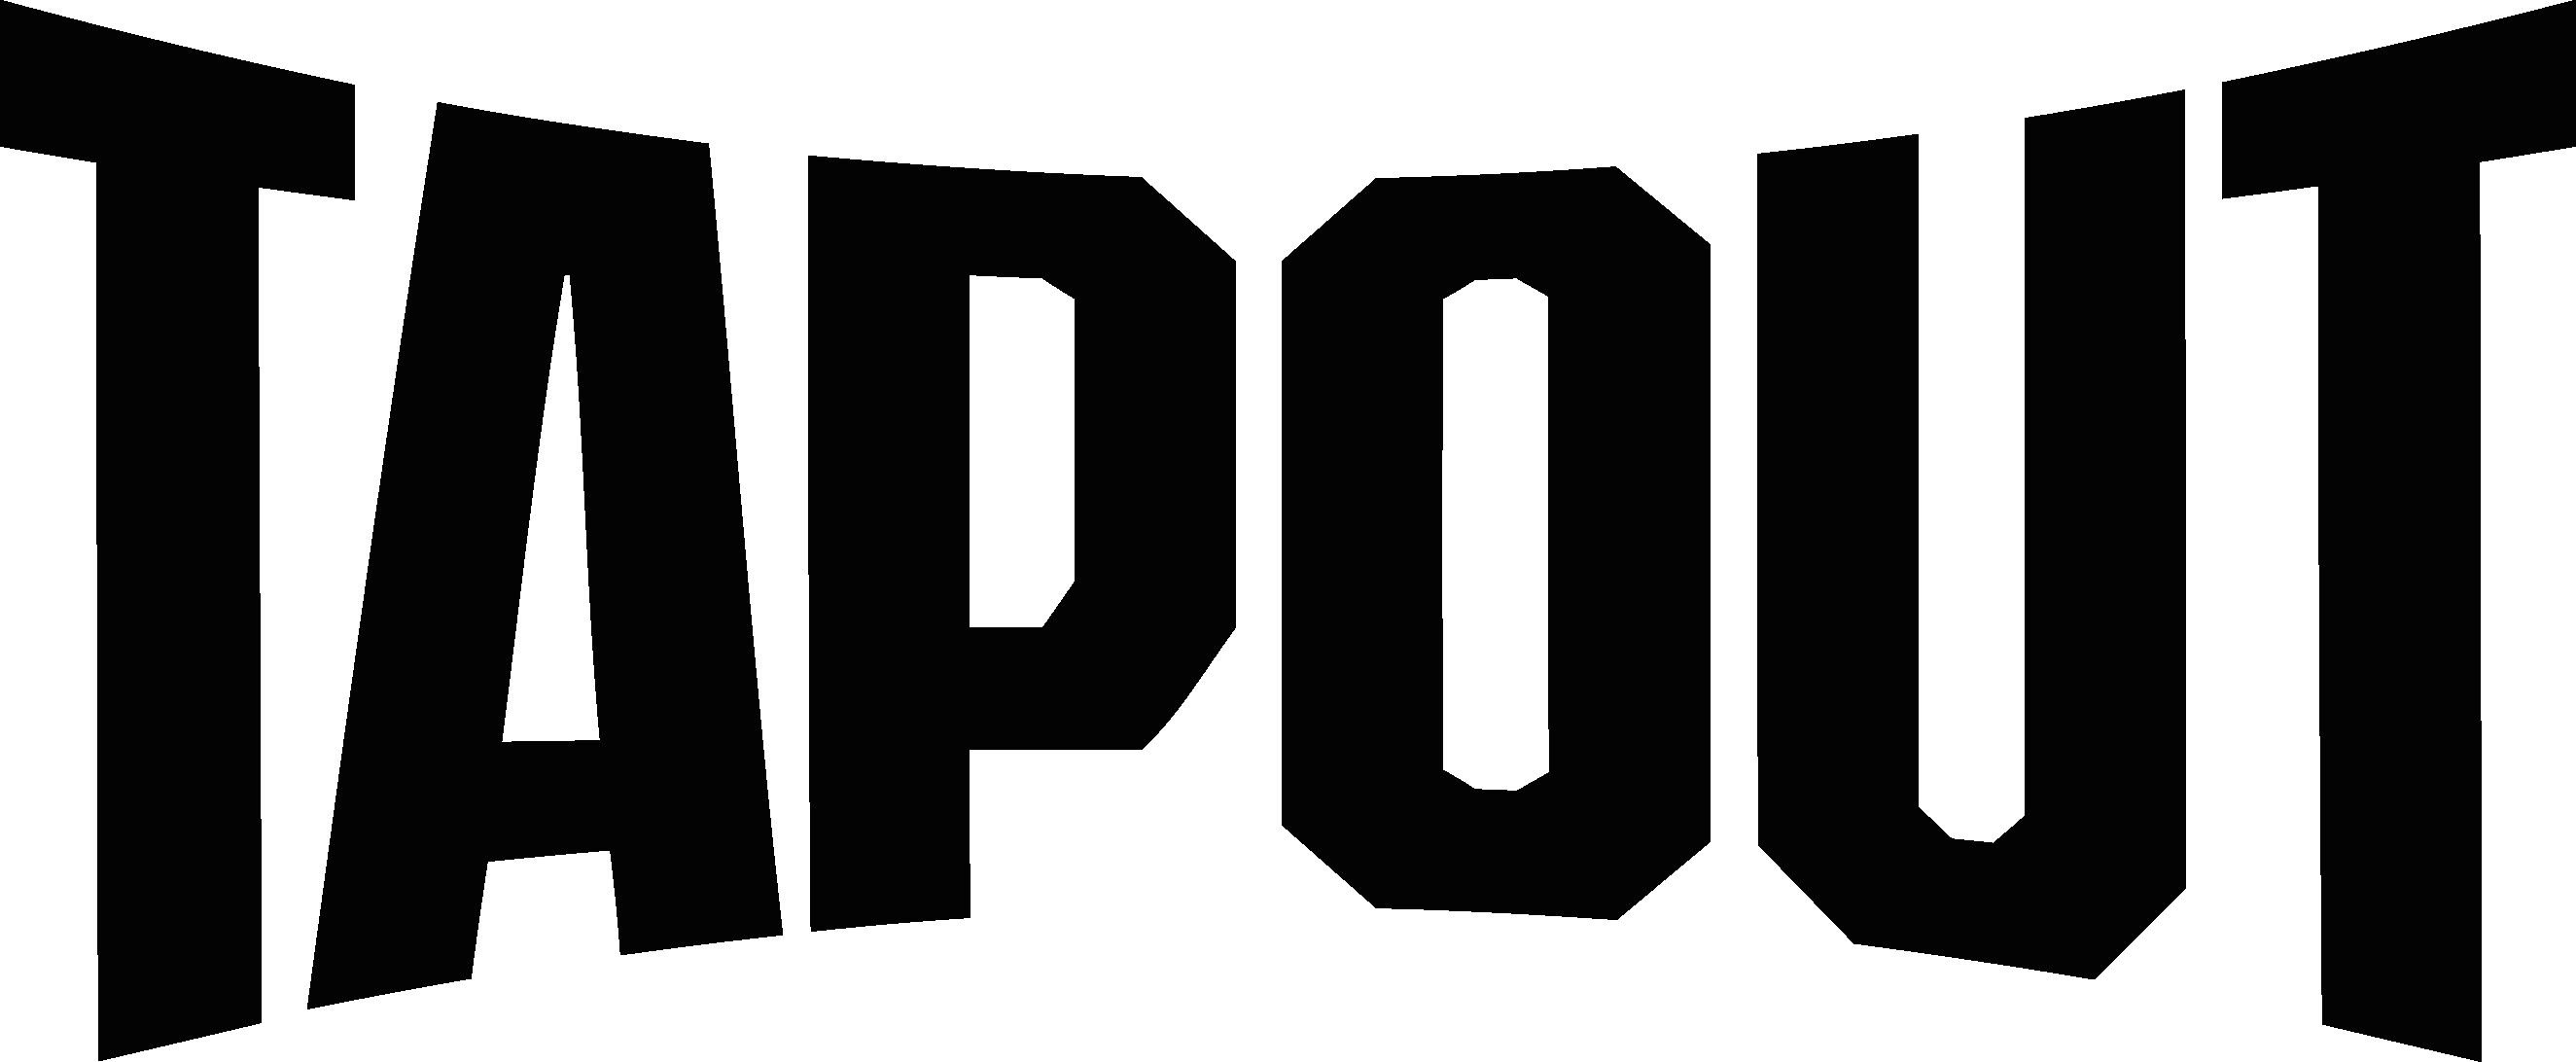 TapOut Logo png